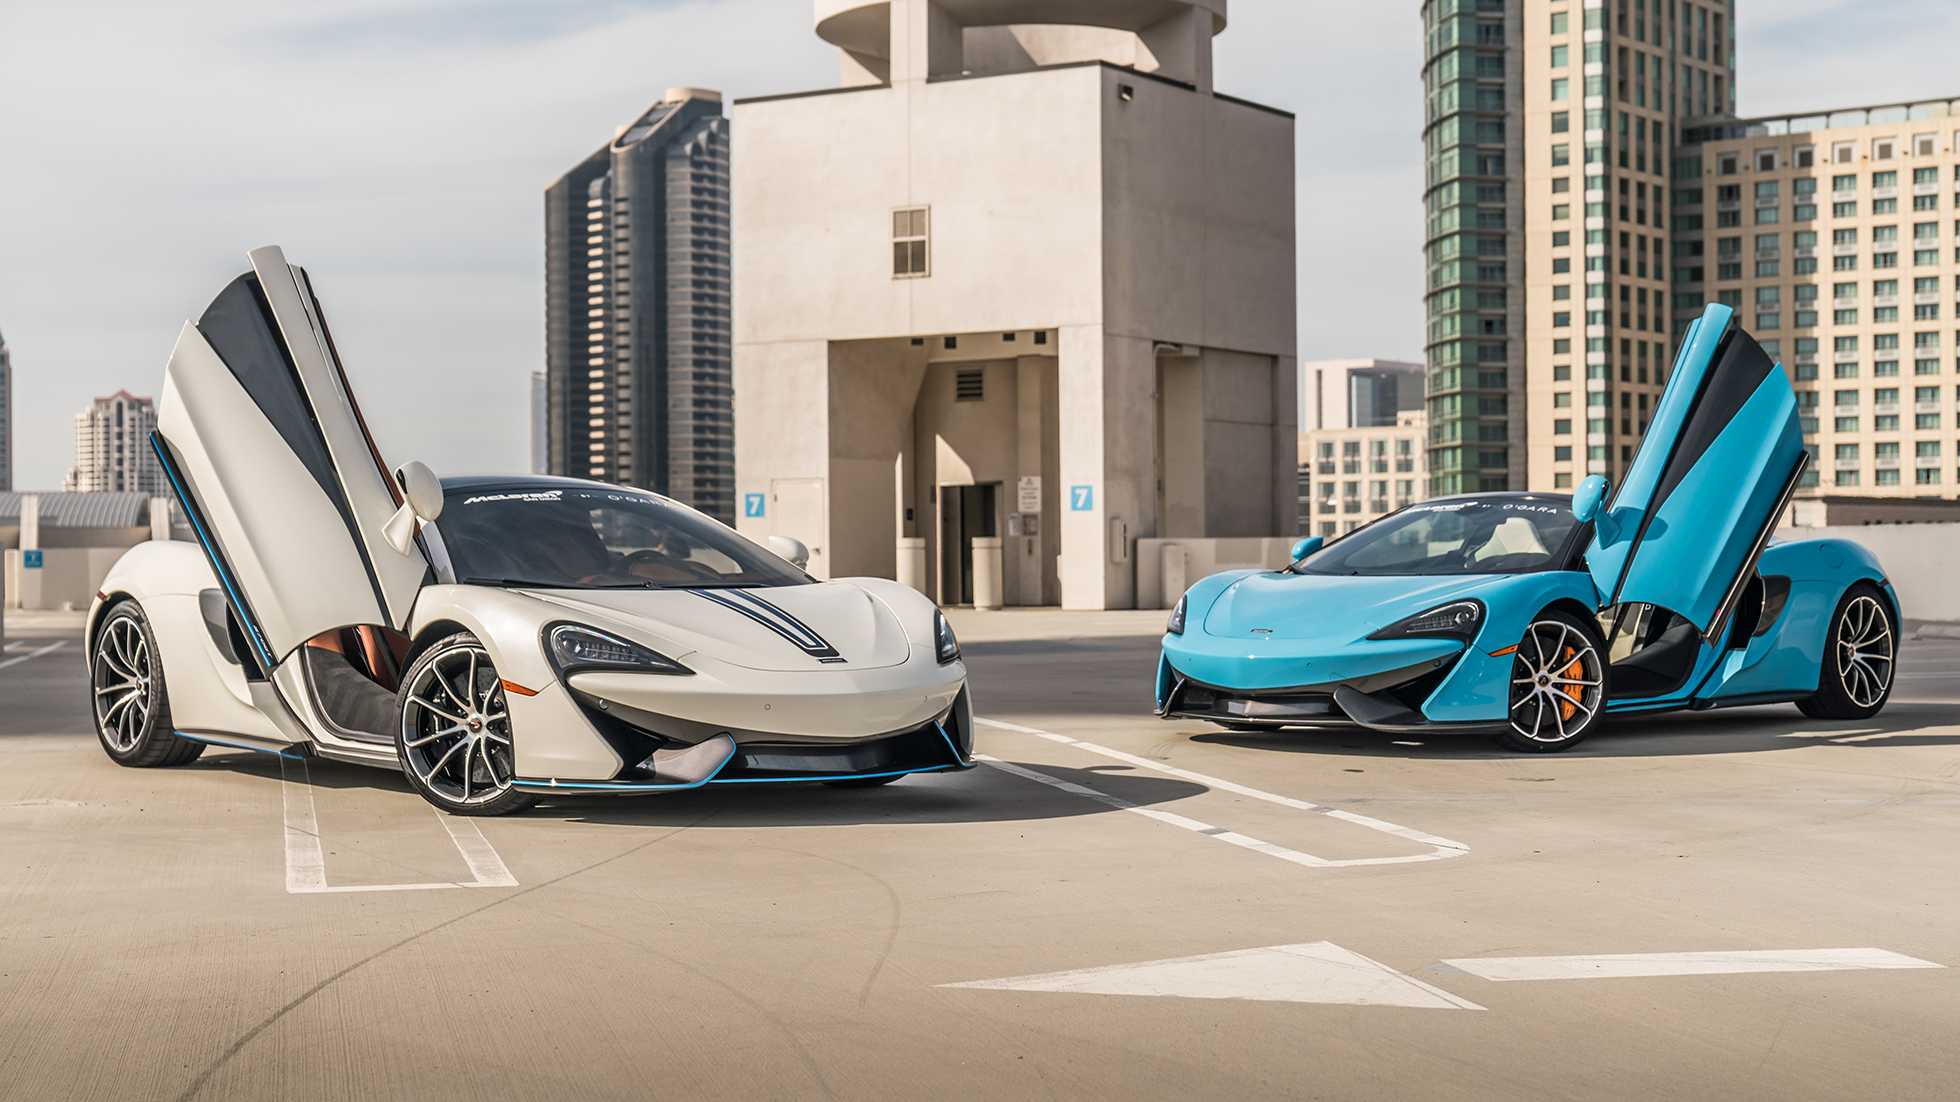 MCLAREN IS SPEEDING ONTO THE SAN DIEGO SUPERCAR SCENE (WITH NO SIGNS OF STOPPING)